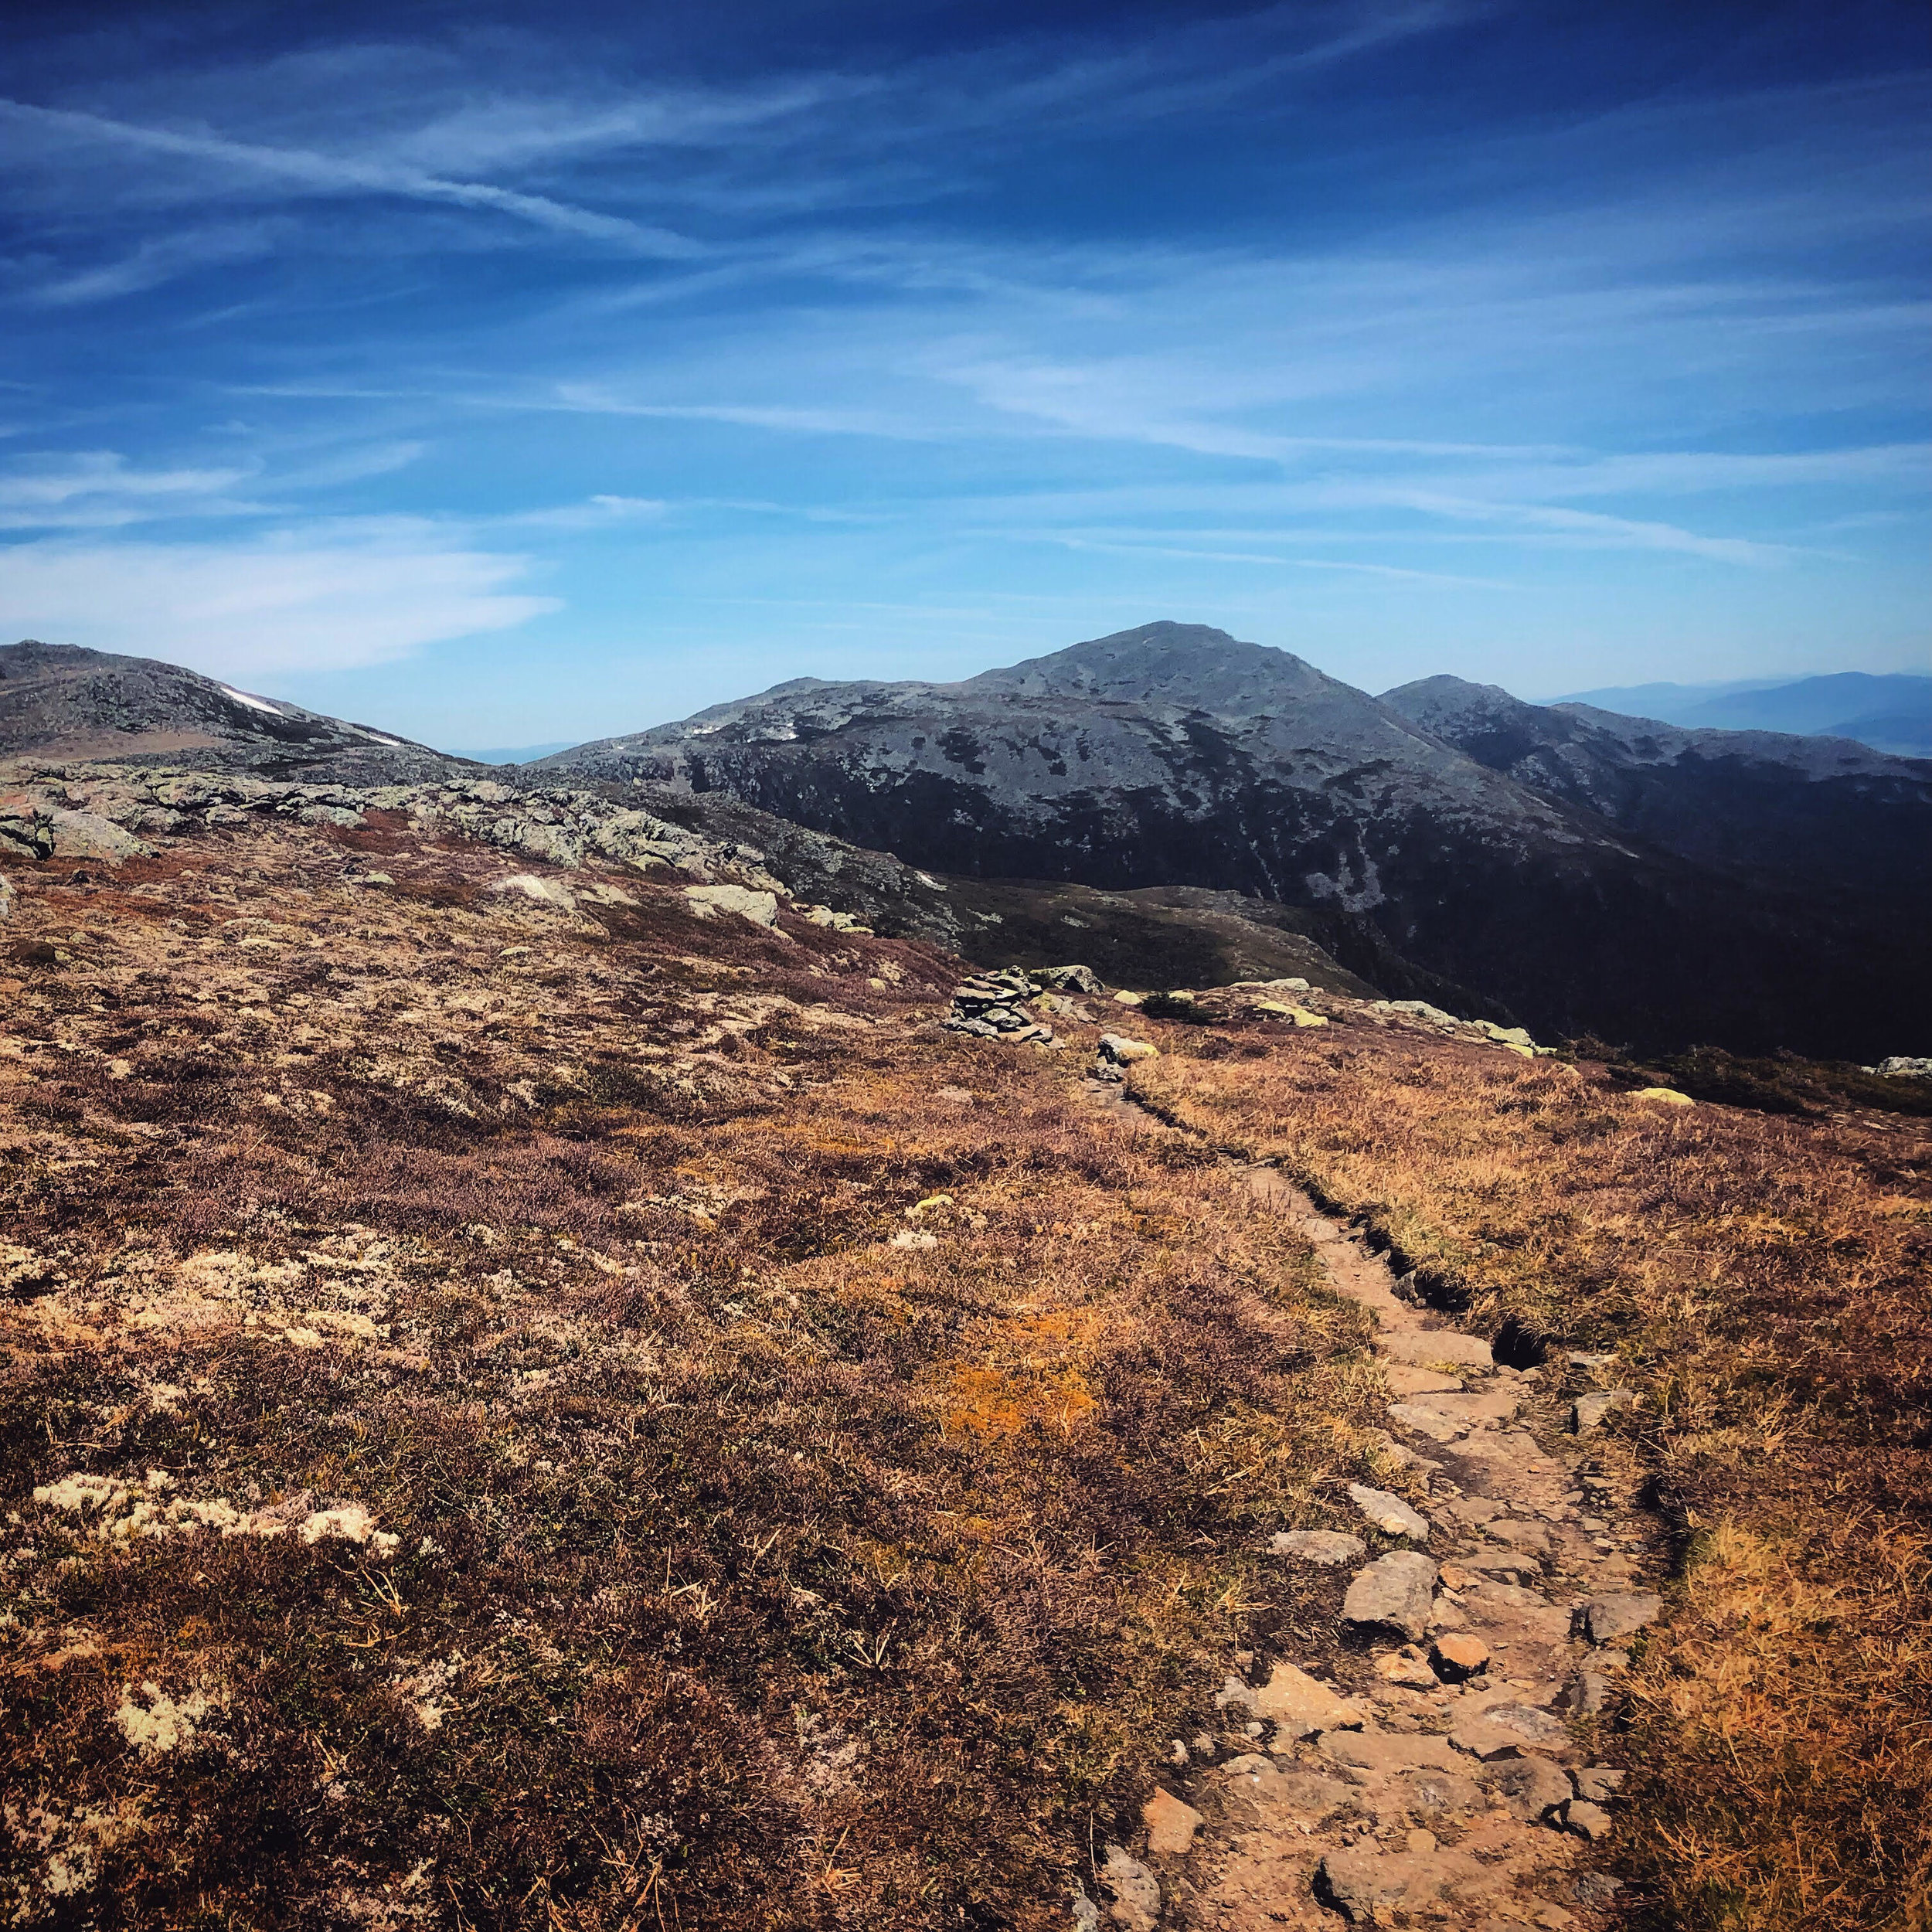 Looking back at the Northern Presidentials